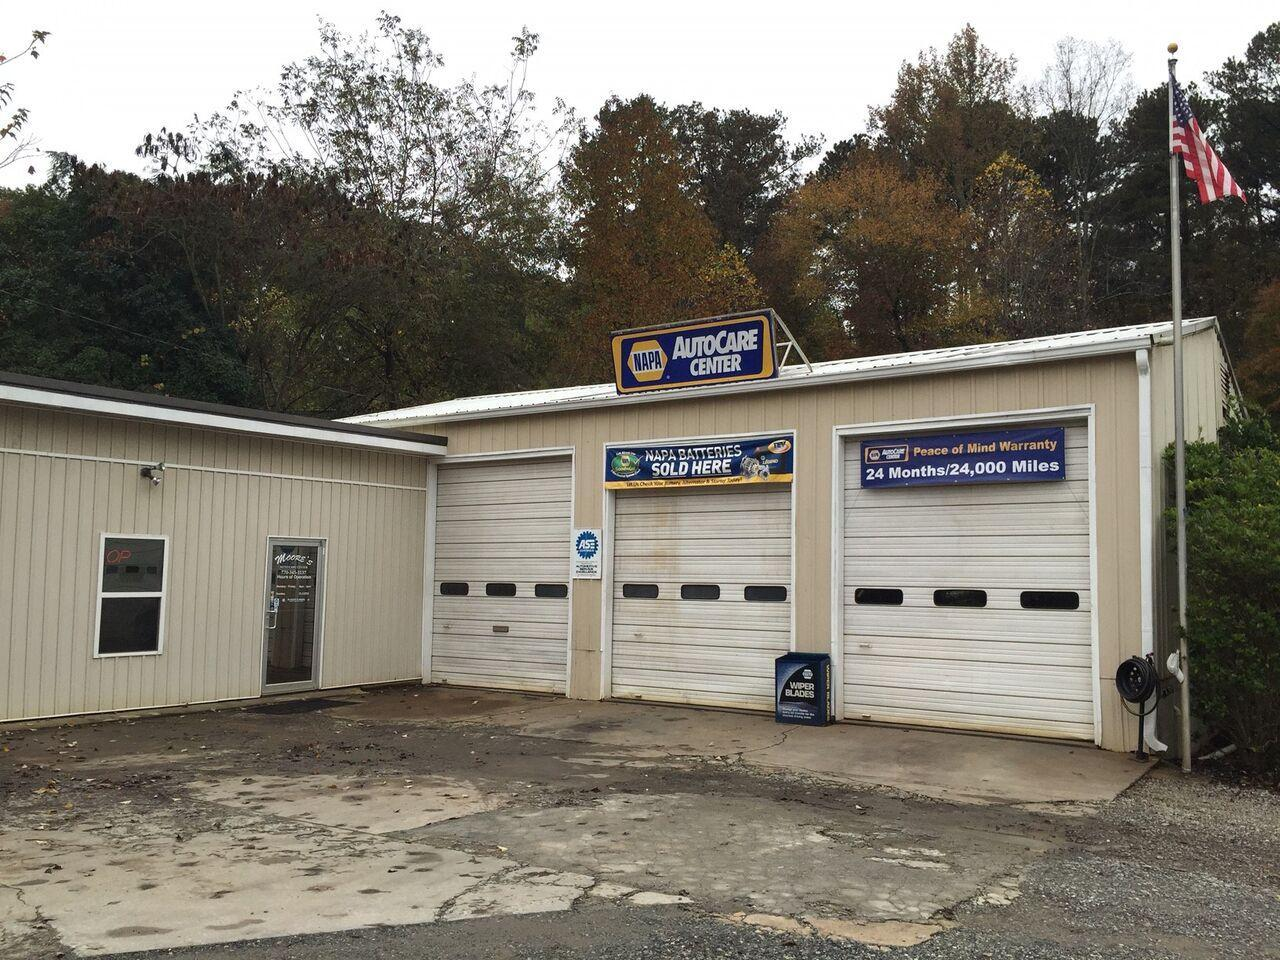 Napa Auto Care Center at Moore's Car Shop